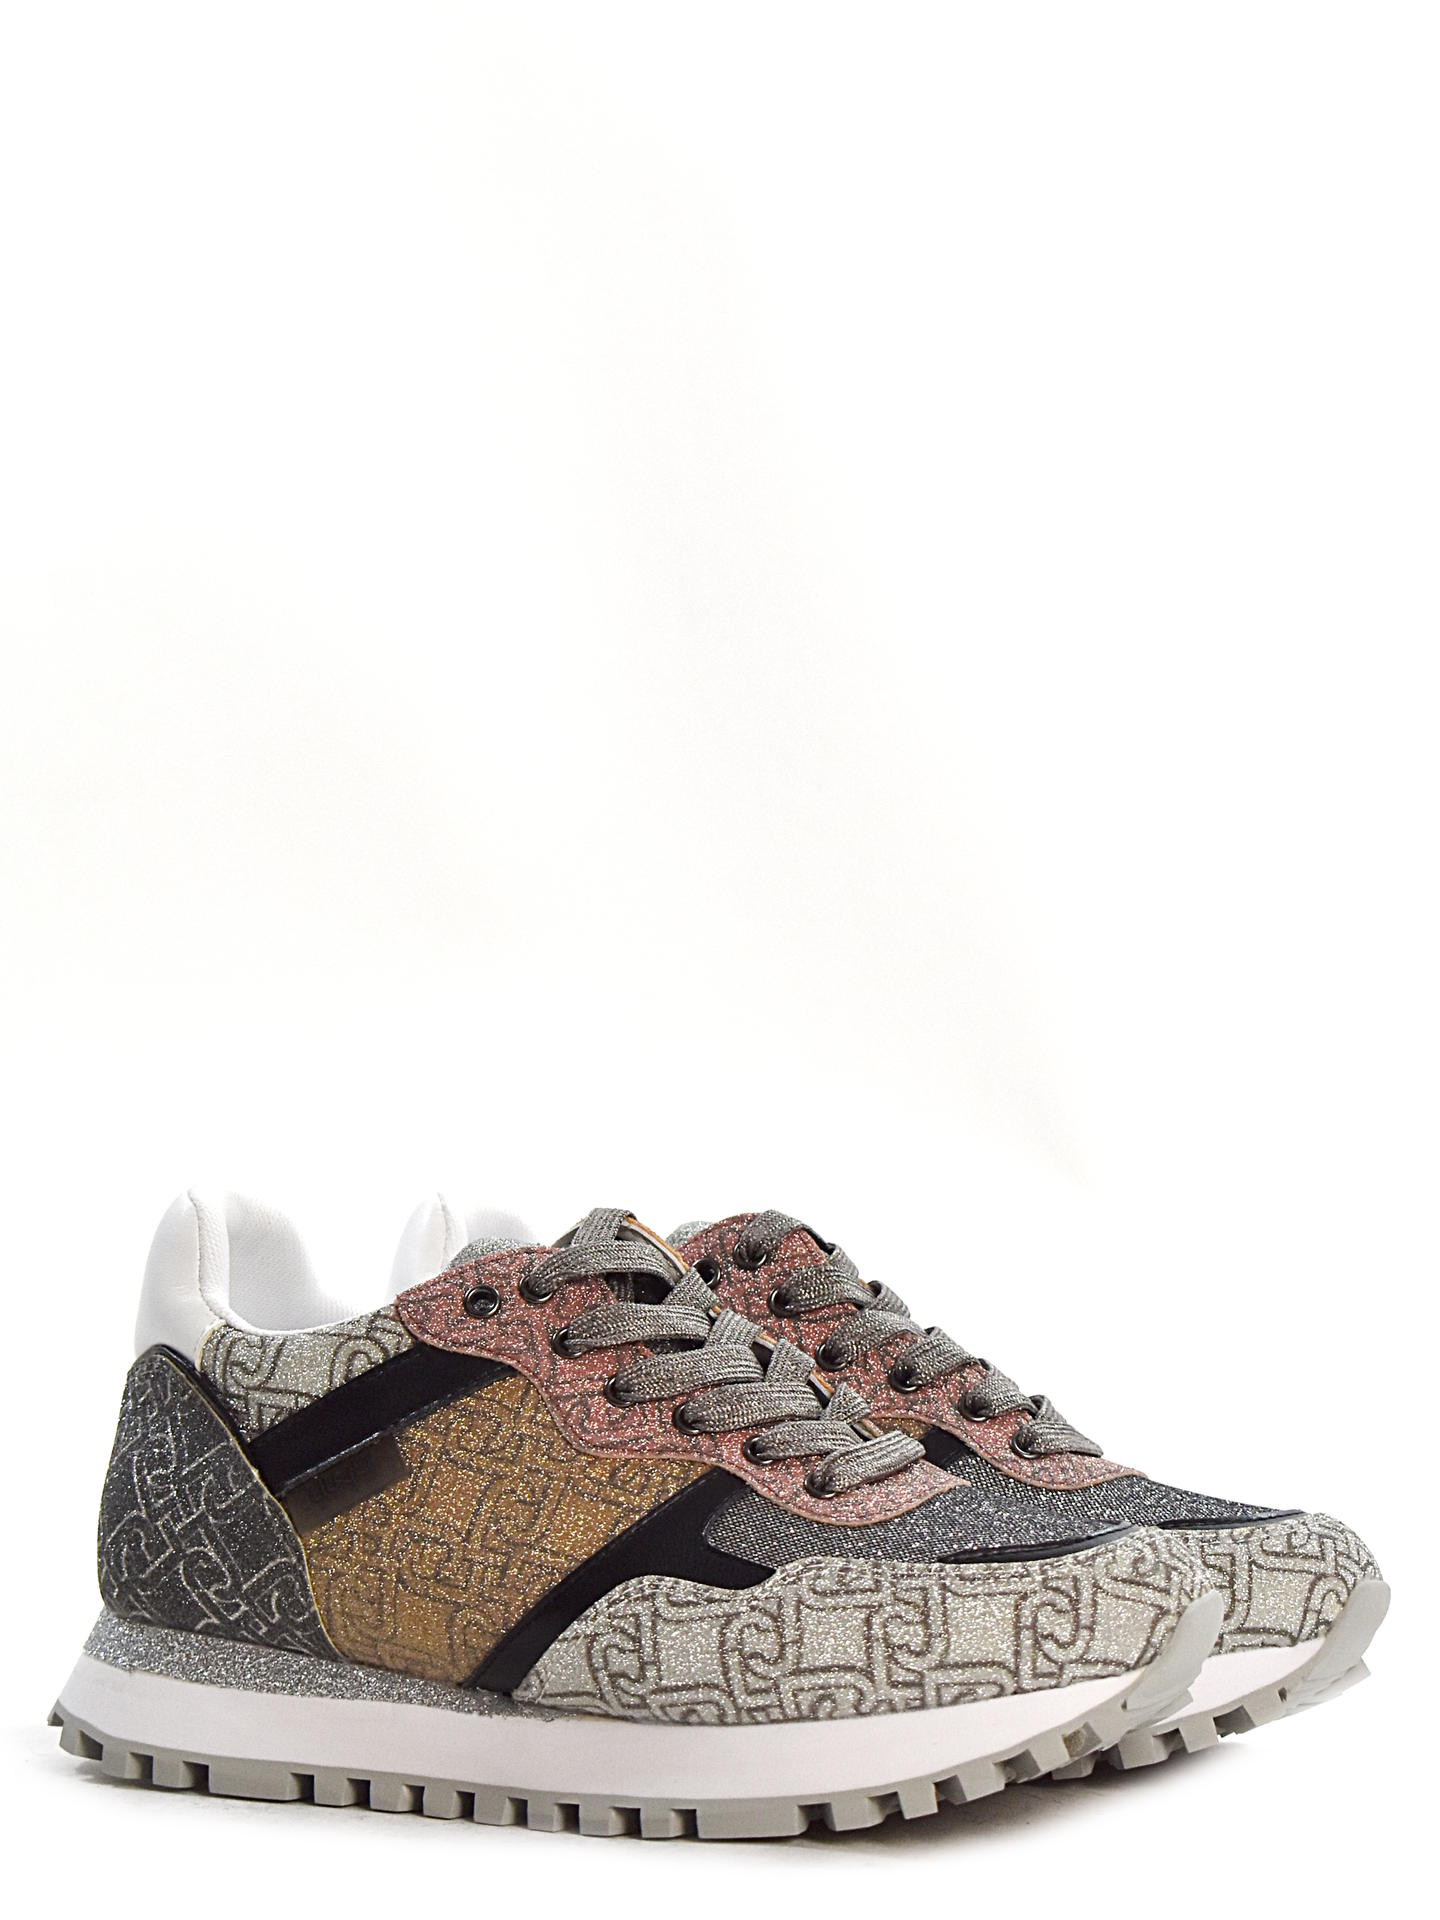 SNEAKERS LIU.JO SHOES BA1049 NERO/ORO